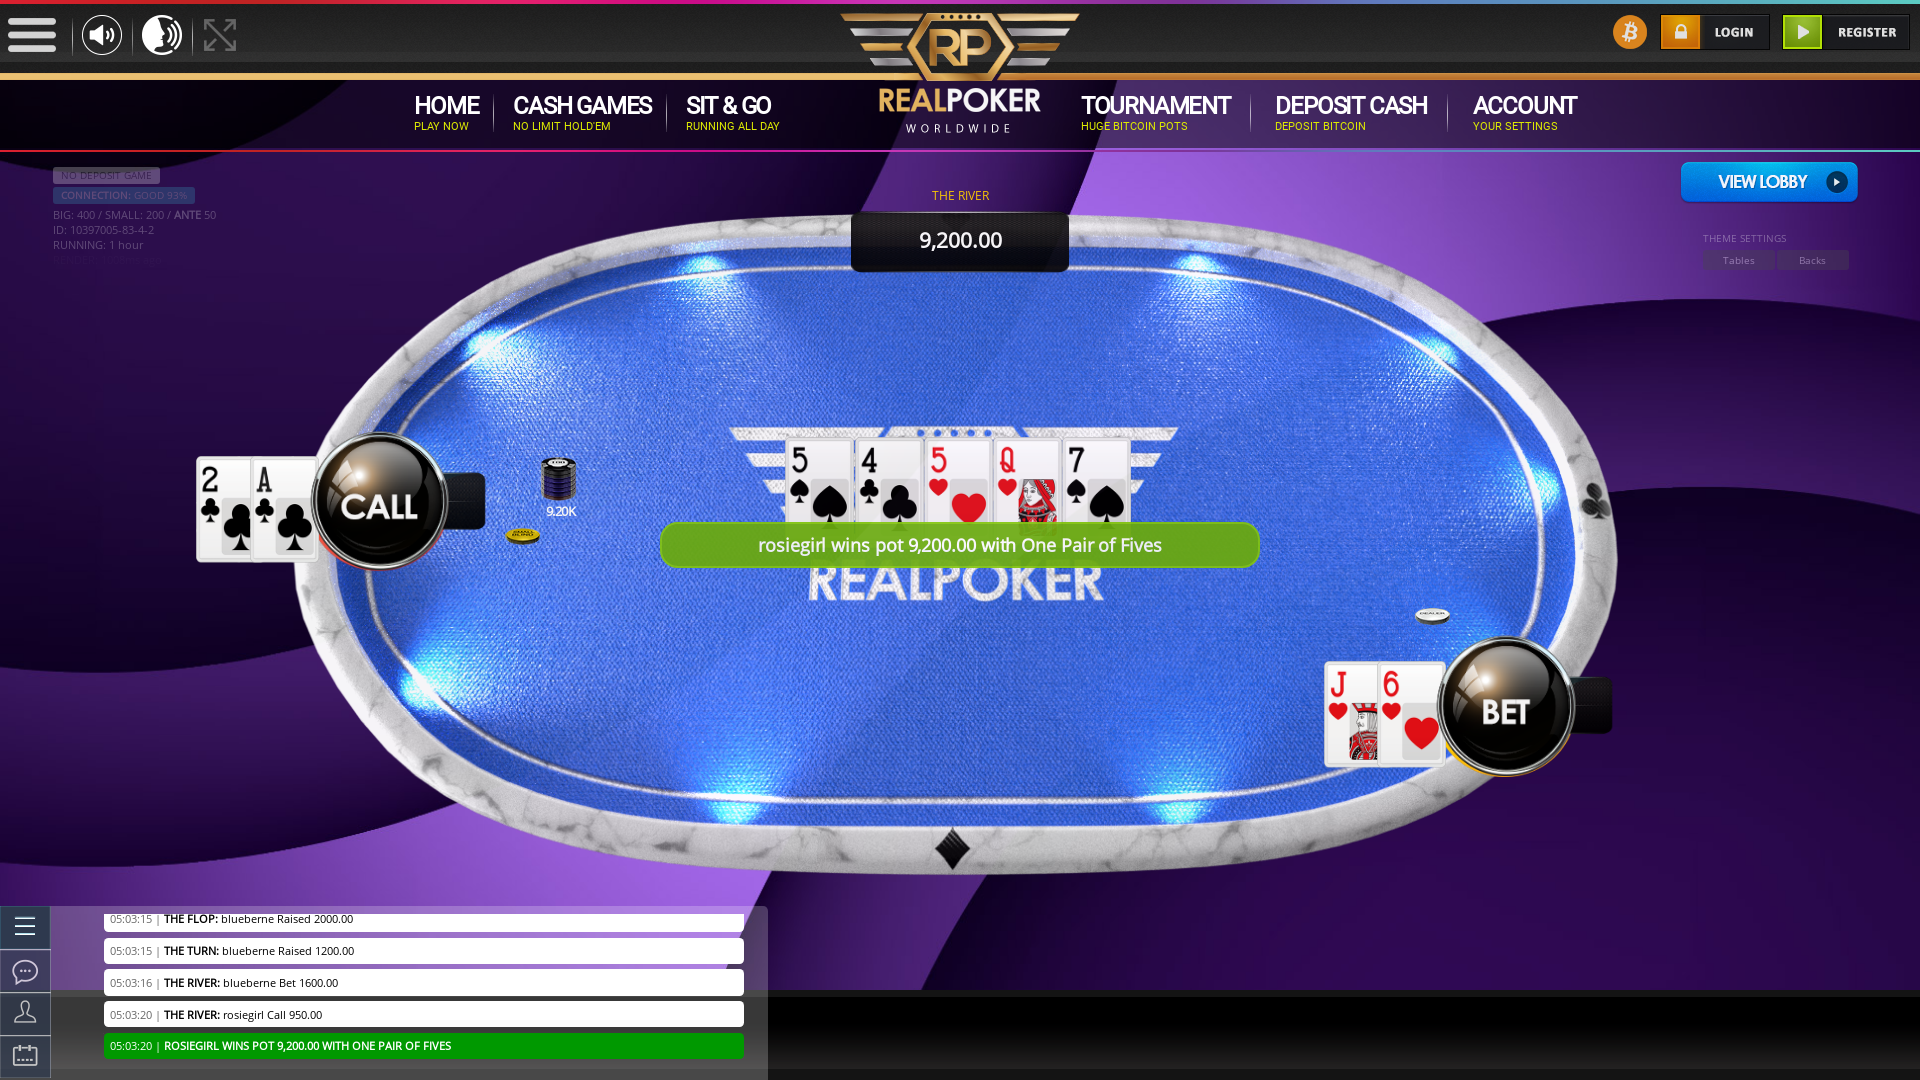 Canada texas holdem poker table on a 10 player table in the 6 game